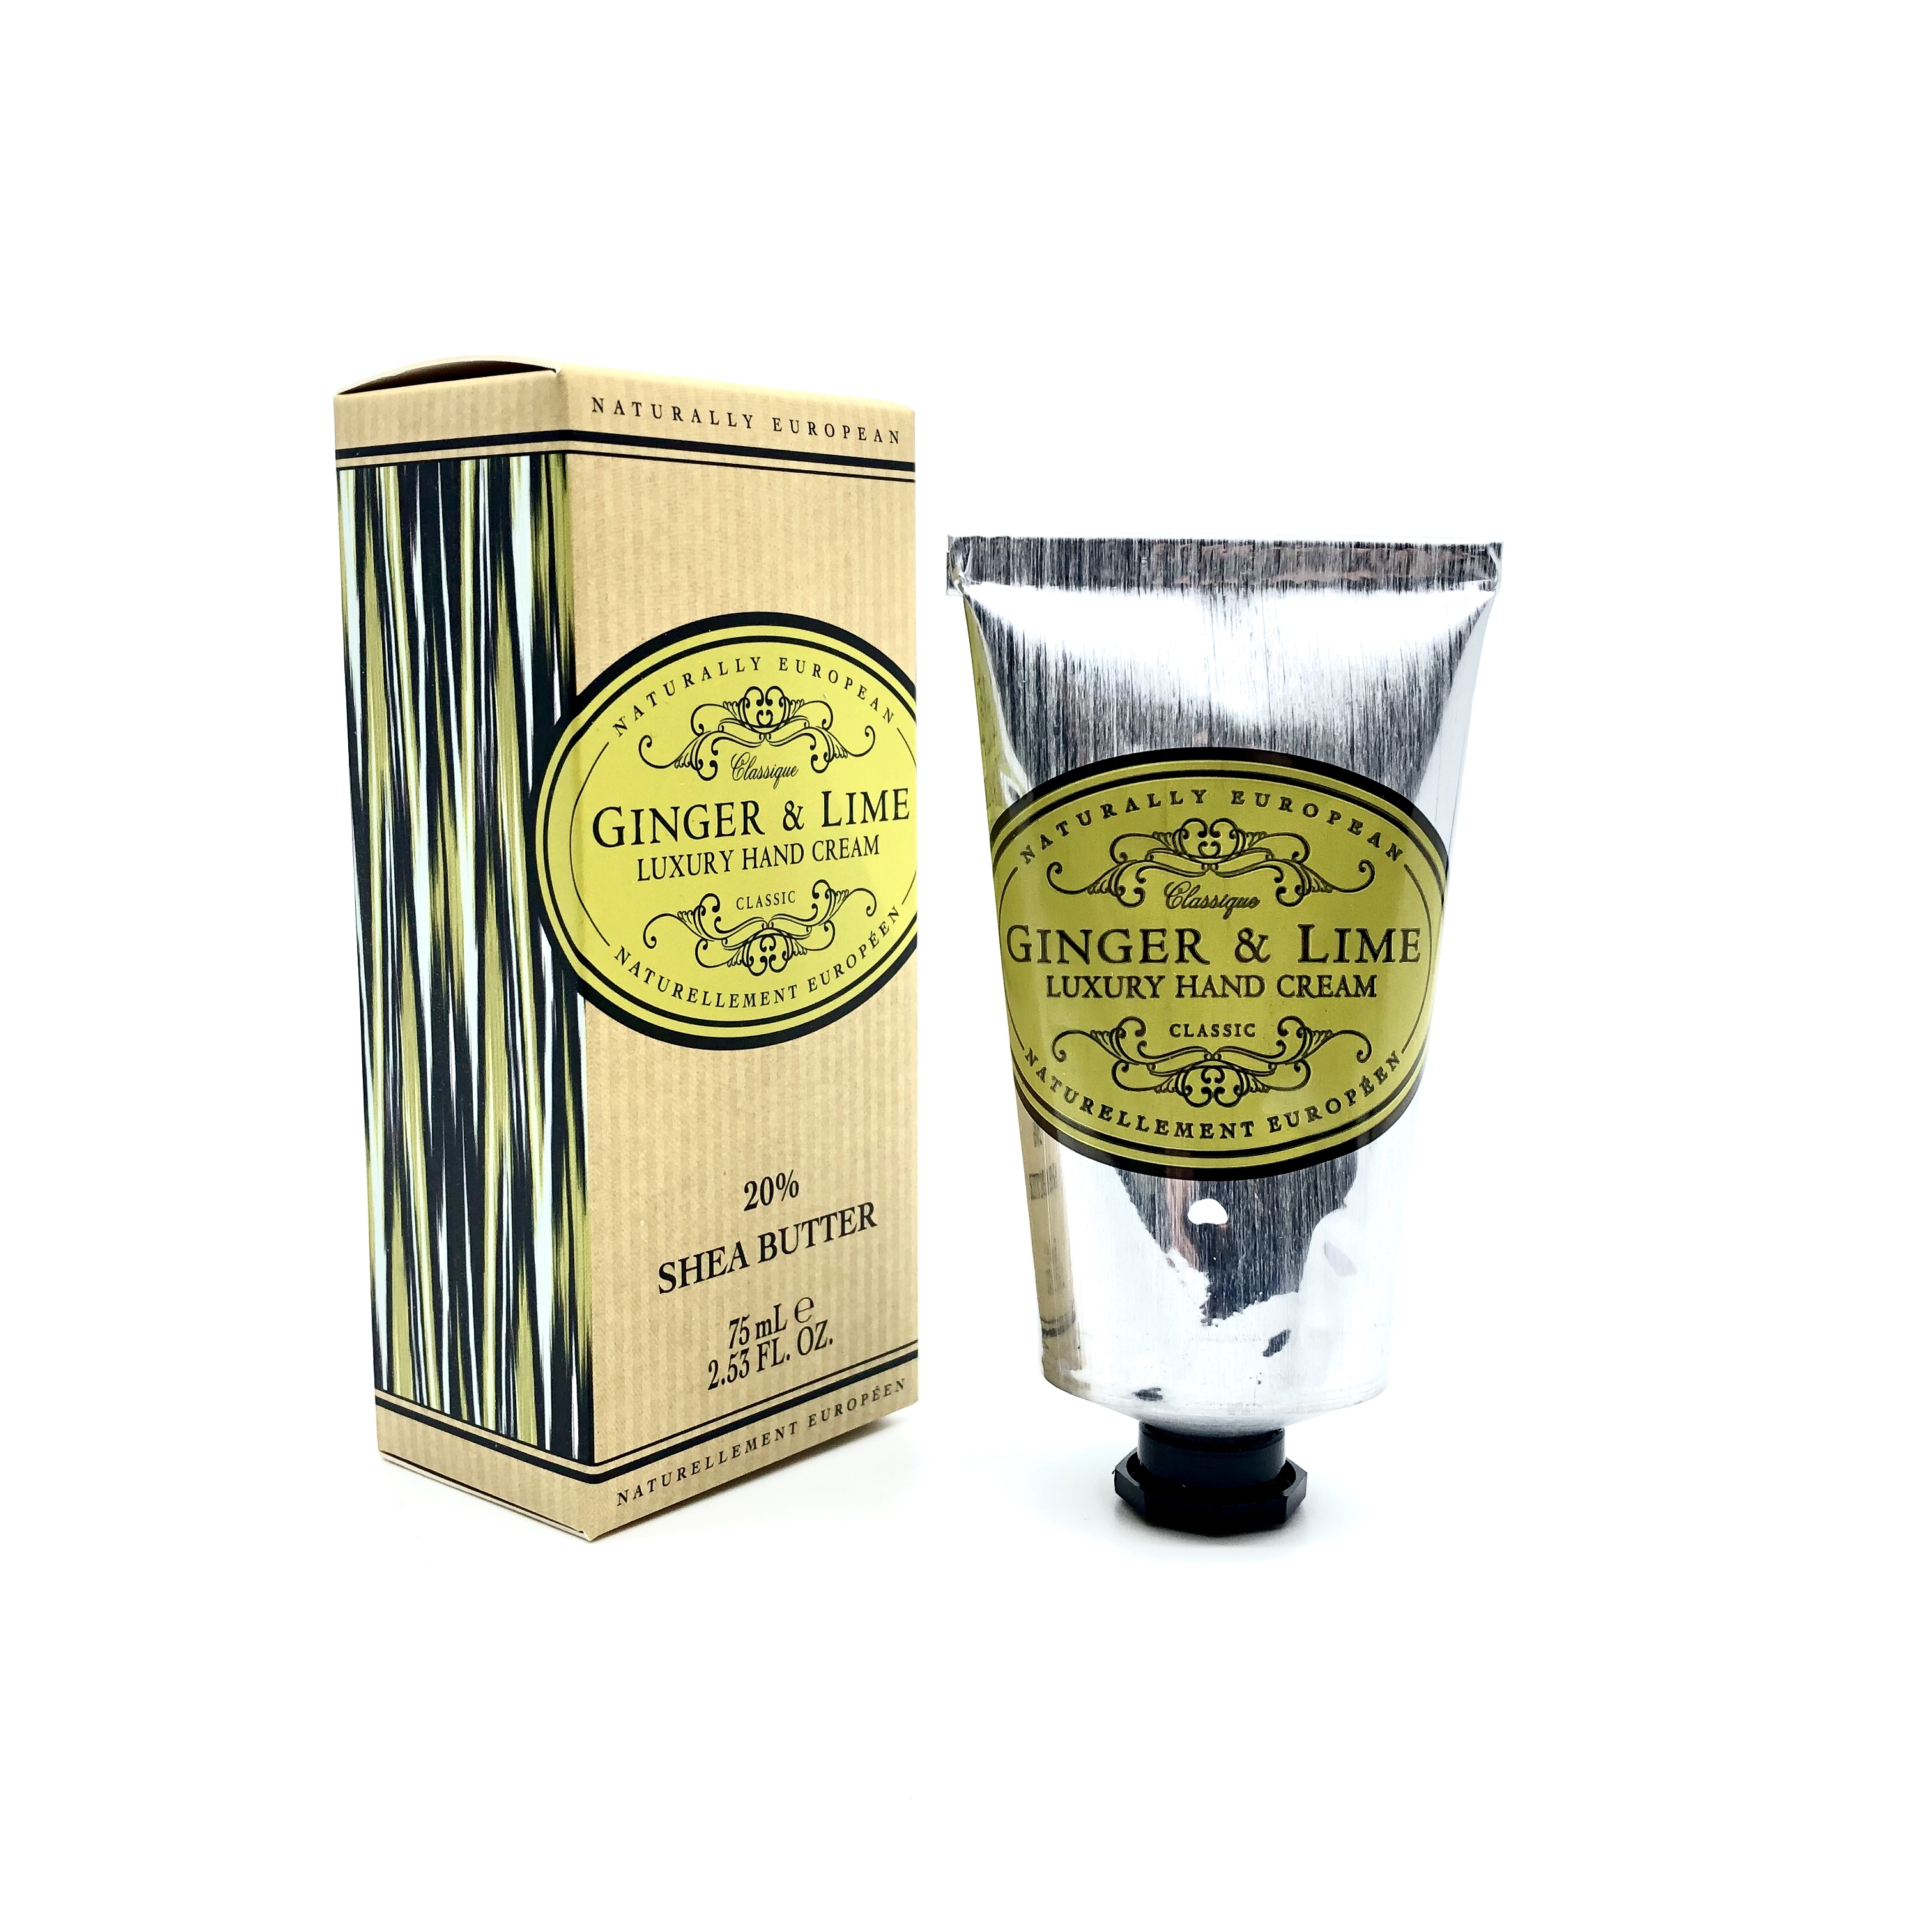 Naturally European Luxury Hand Cream Ginger Lime